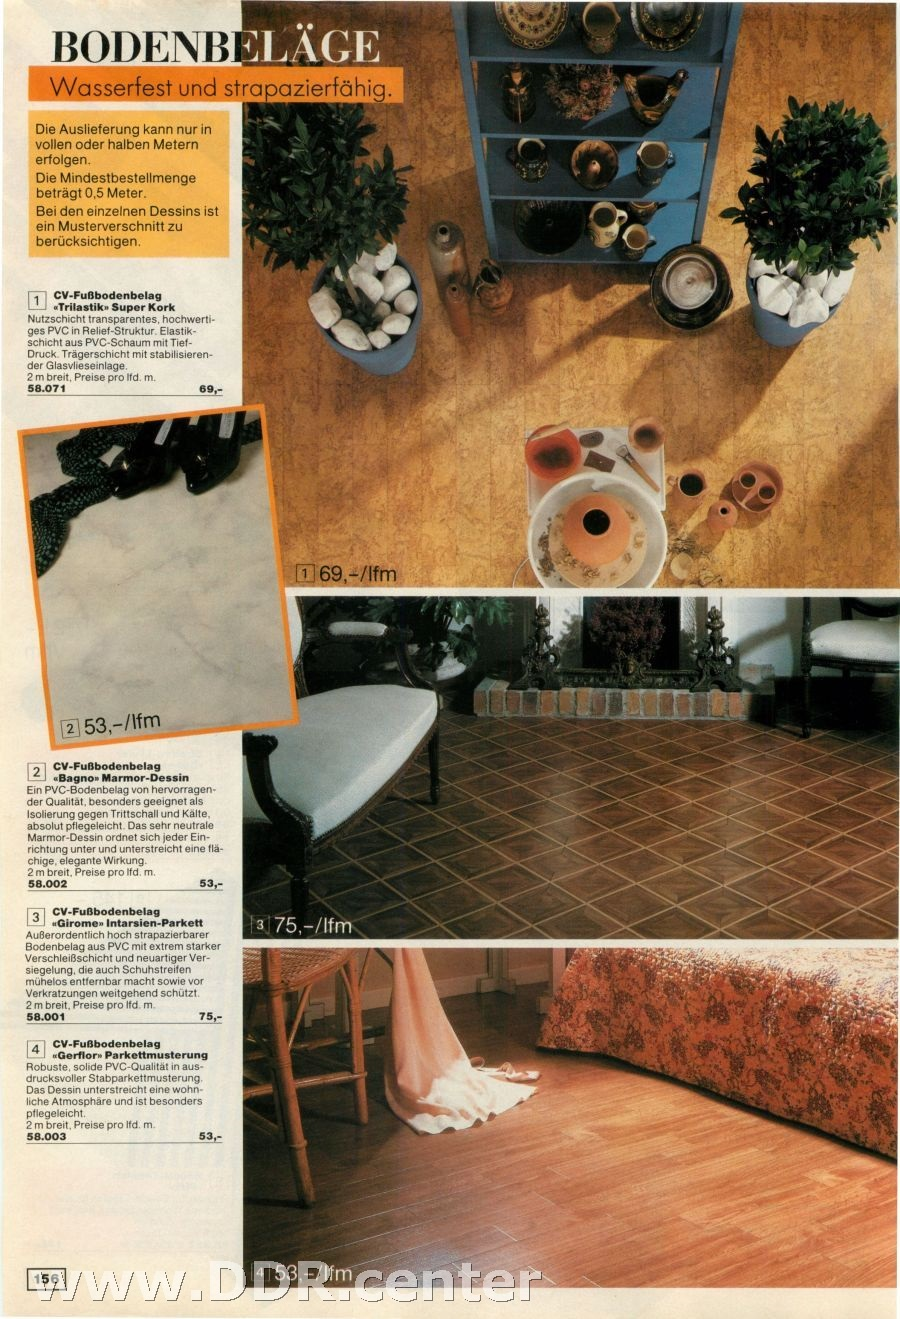 genex katalog 1989 geschenke in die ddr seite 156. Black Bedroom Furniture Sets. Home Design Ideas